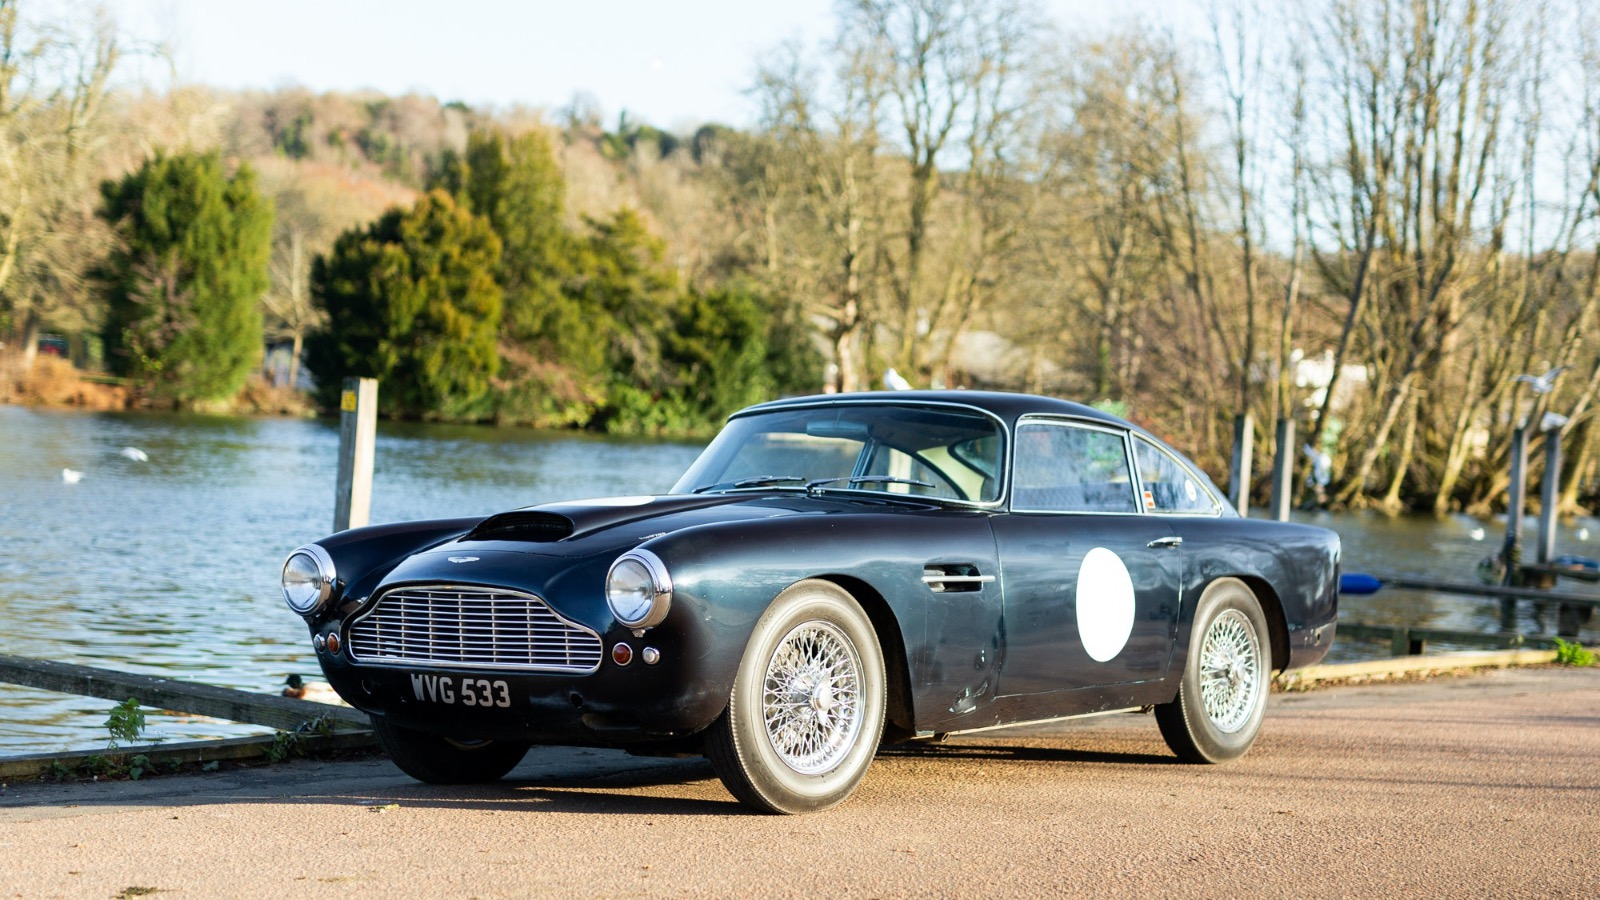 Aston Martin DB4 Series III